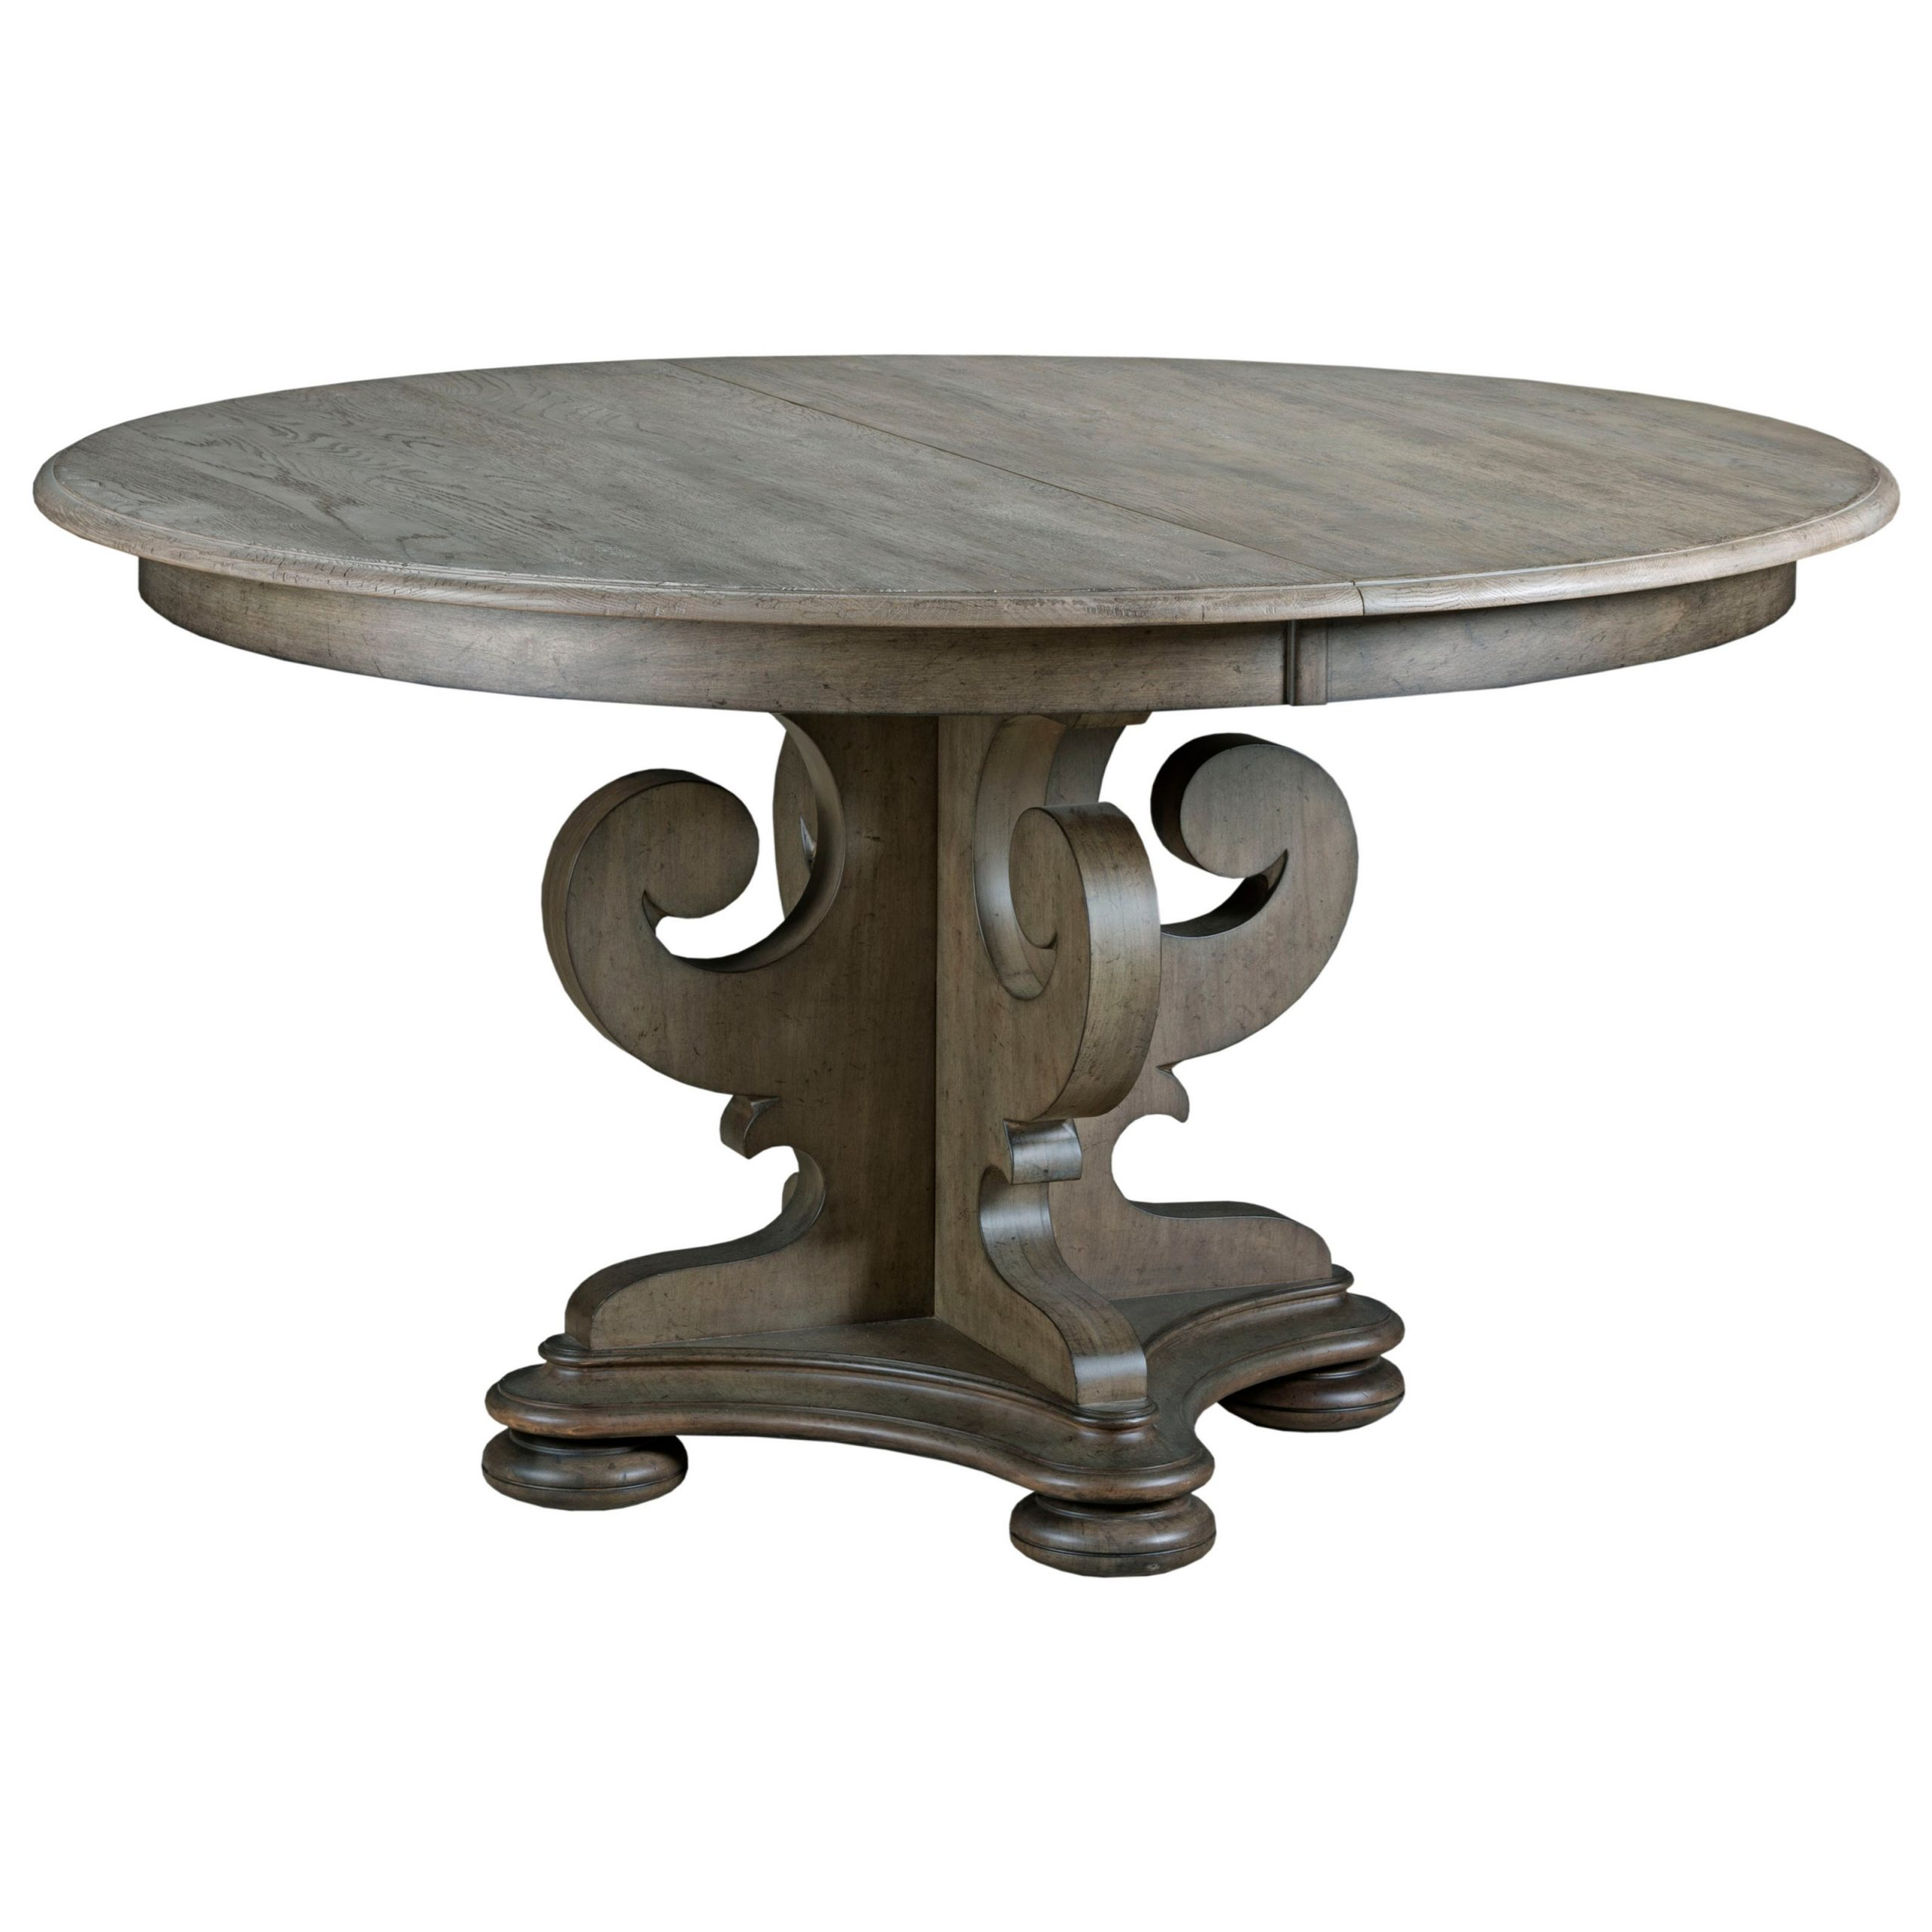 Kincaid Furniture Greyson Grant Scrolled Pedestal Round Throughout Recent Dawson Pedestal Dining Tables (Image 10 of 25)